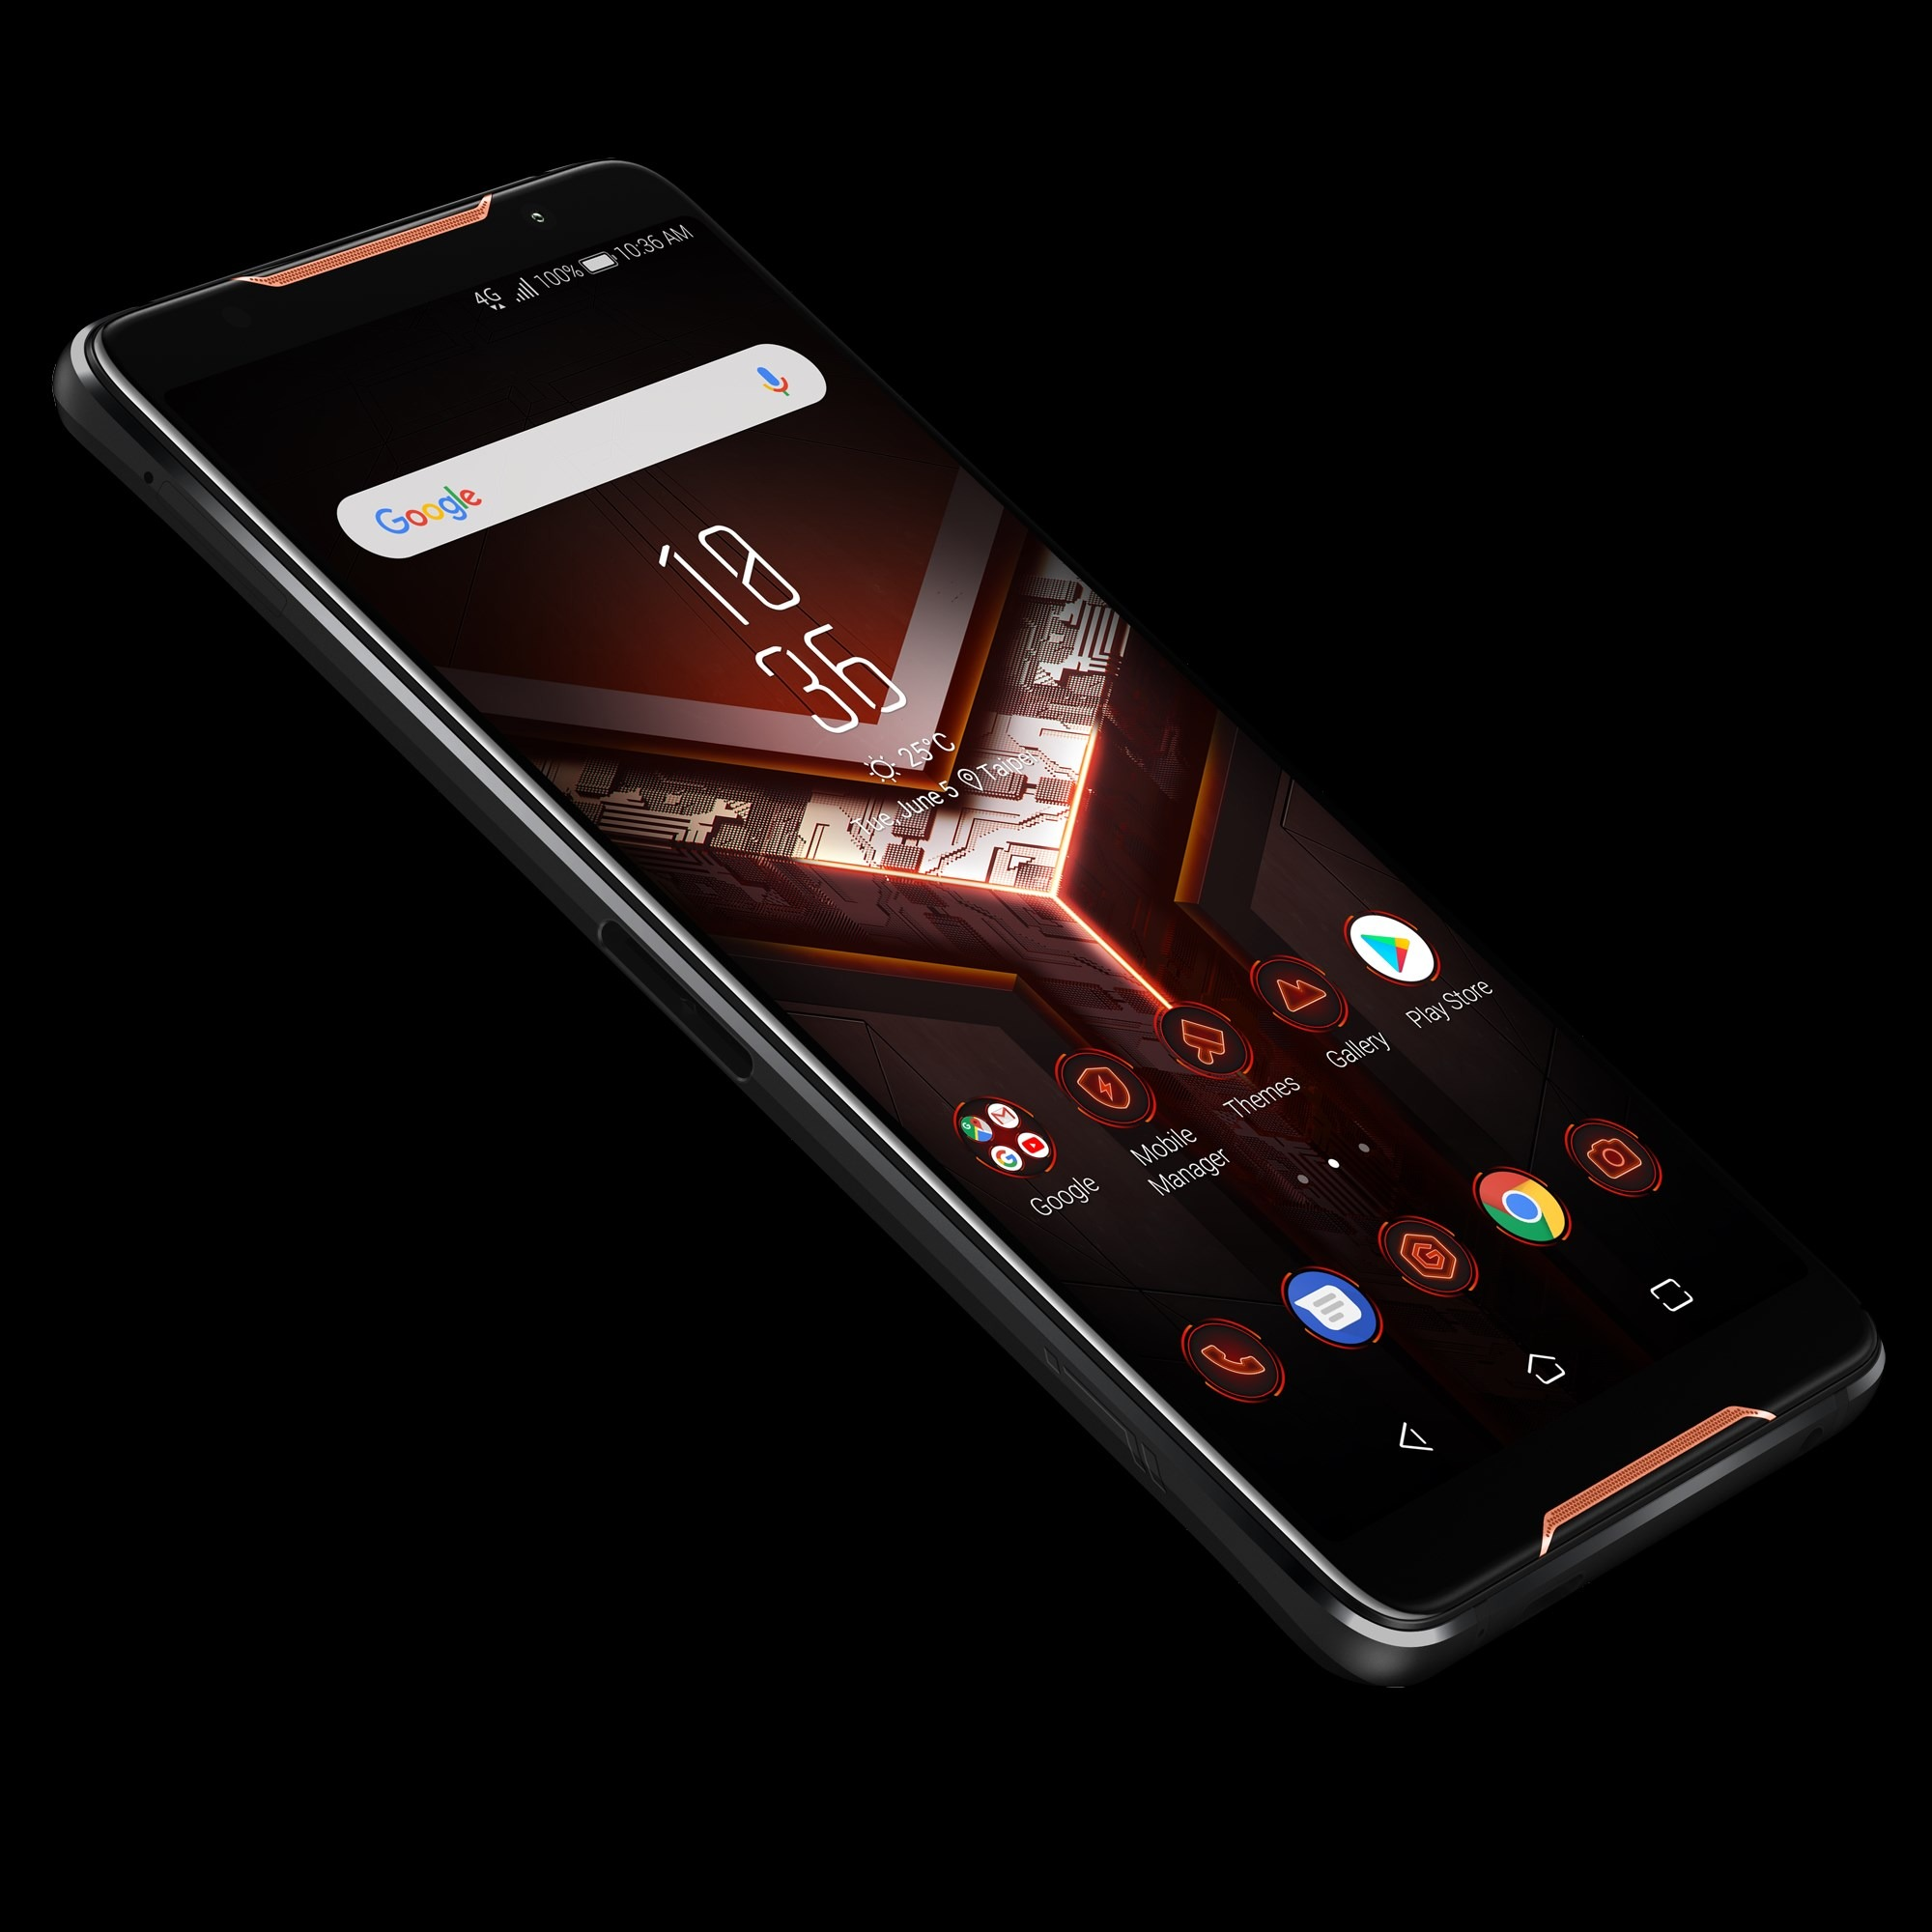 Asus Rog Phone price starts at $899, pre-orders from October 18 5